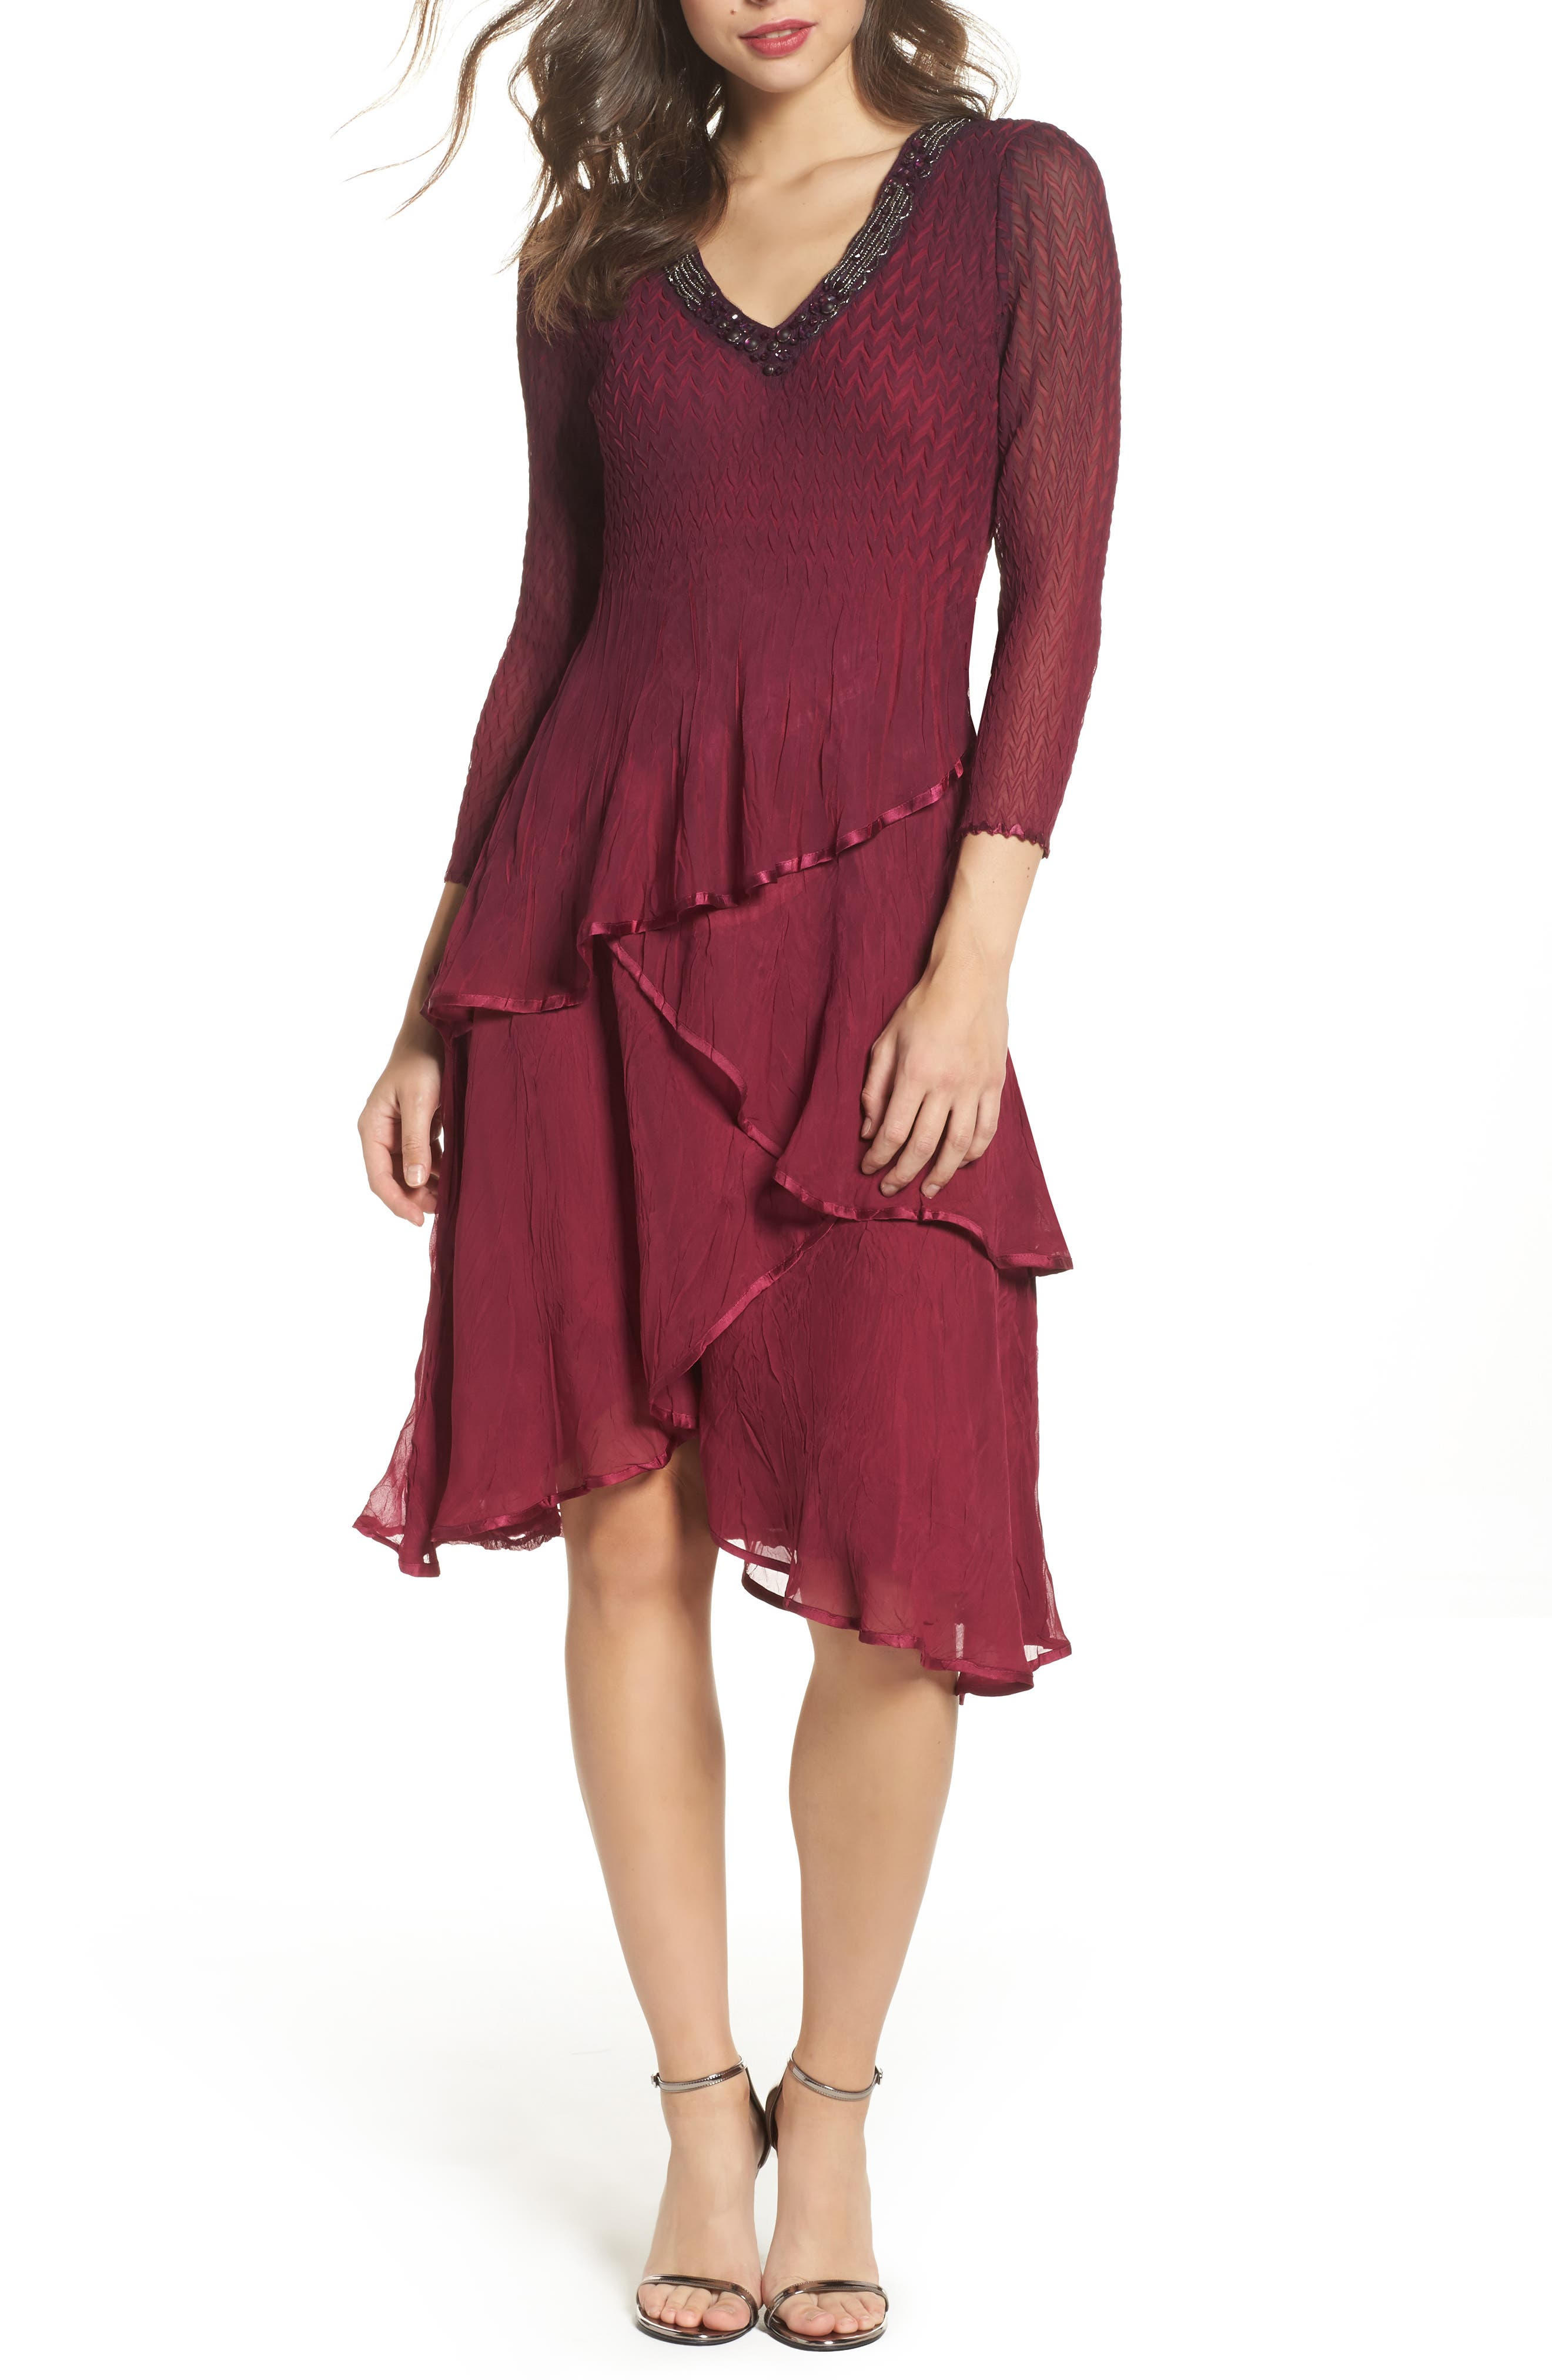 Tiered Ombré Charmeuse & Chiffon Dress,                             Main thumbnail 1, color,                             Red Plum Blue Ombre